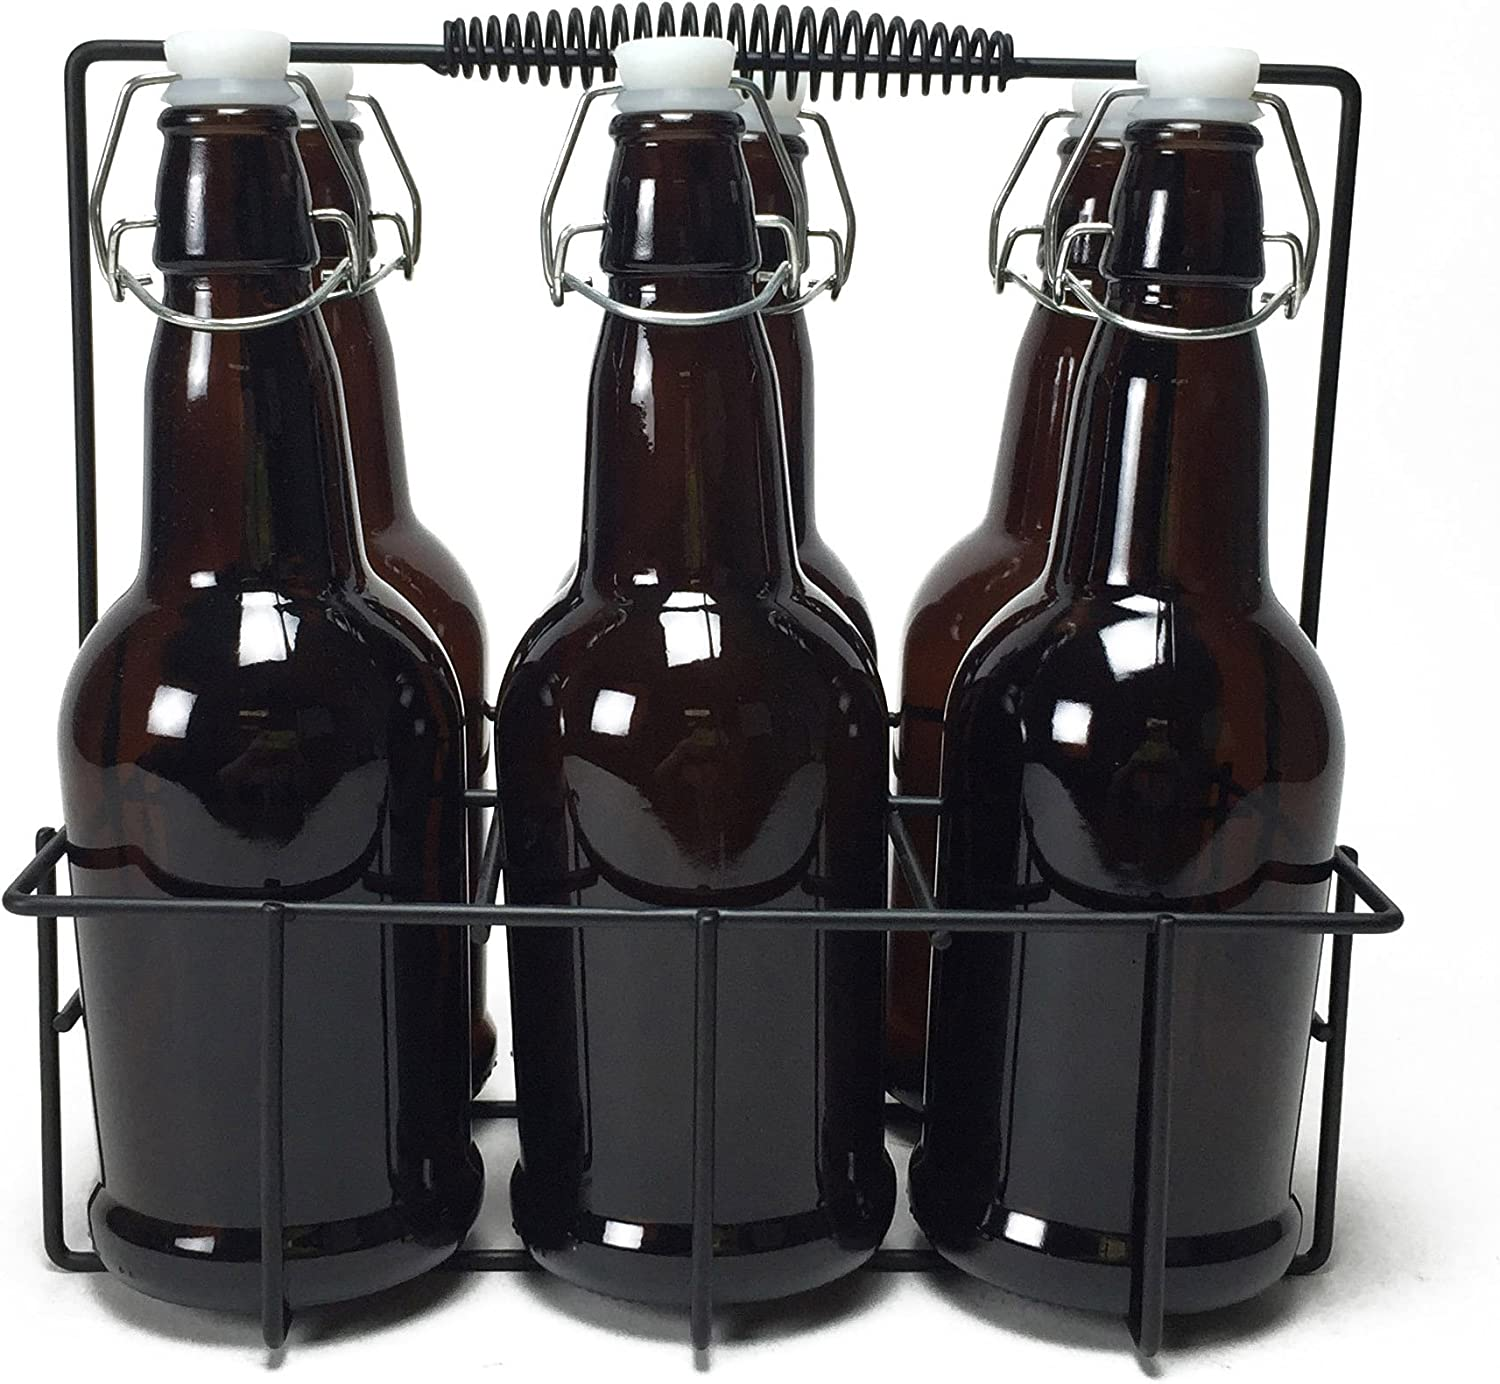 Circleware IBrew Glass Water Bottle Carafe with Hermetic Locking Swing Top Easy Wire Lid Stopper and Metal Caddy Stand, Set of 7, 16.9 oz, 6pc, Brown Beer